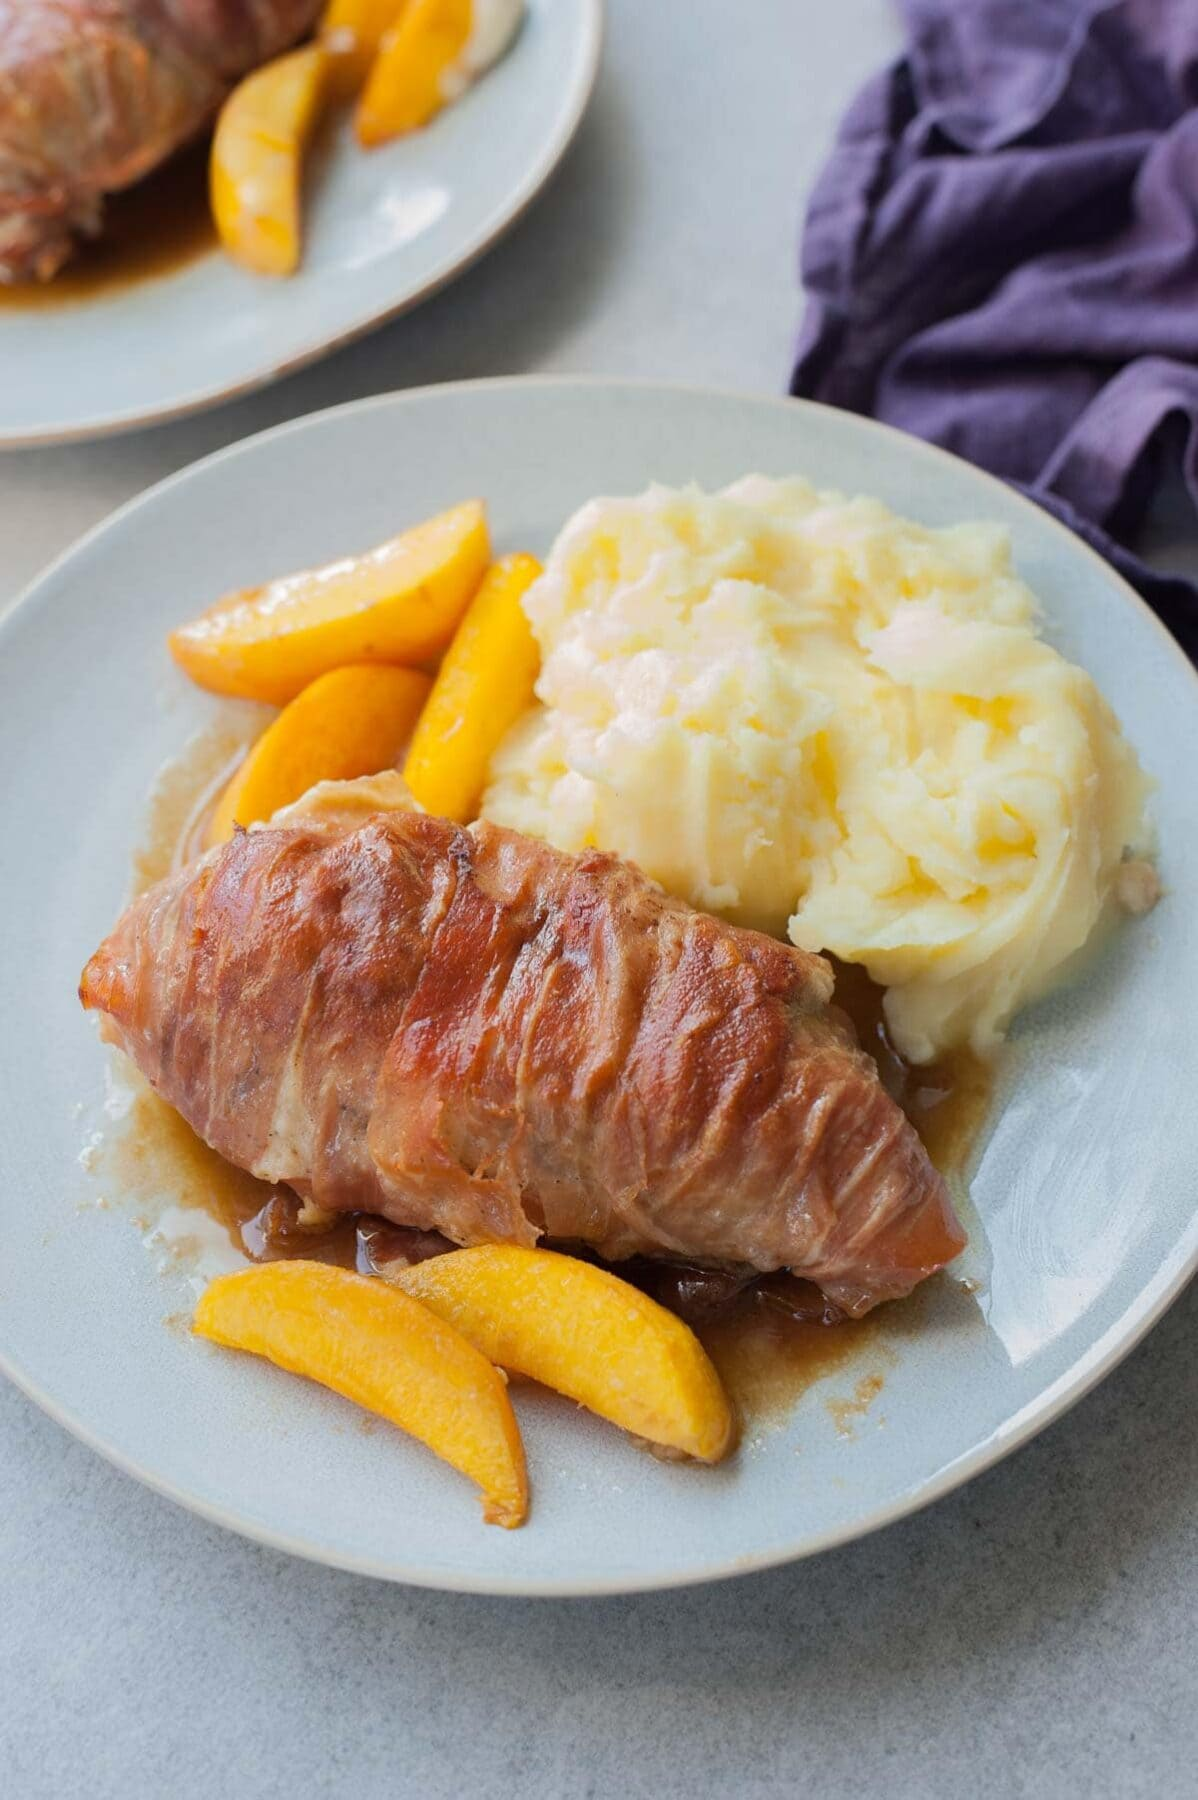 Prosciutto-wrapped chicken with peaches and balsamic glaze on a blue plate.